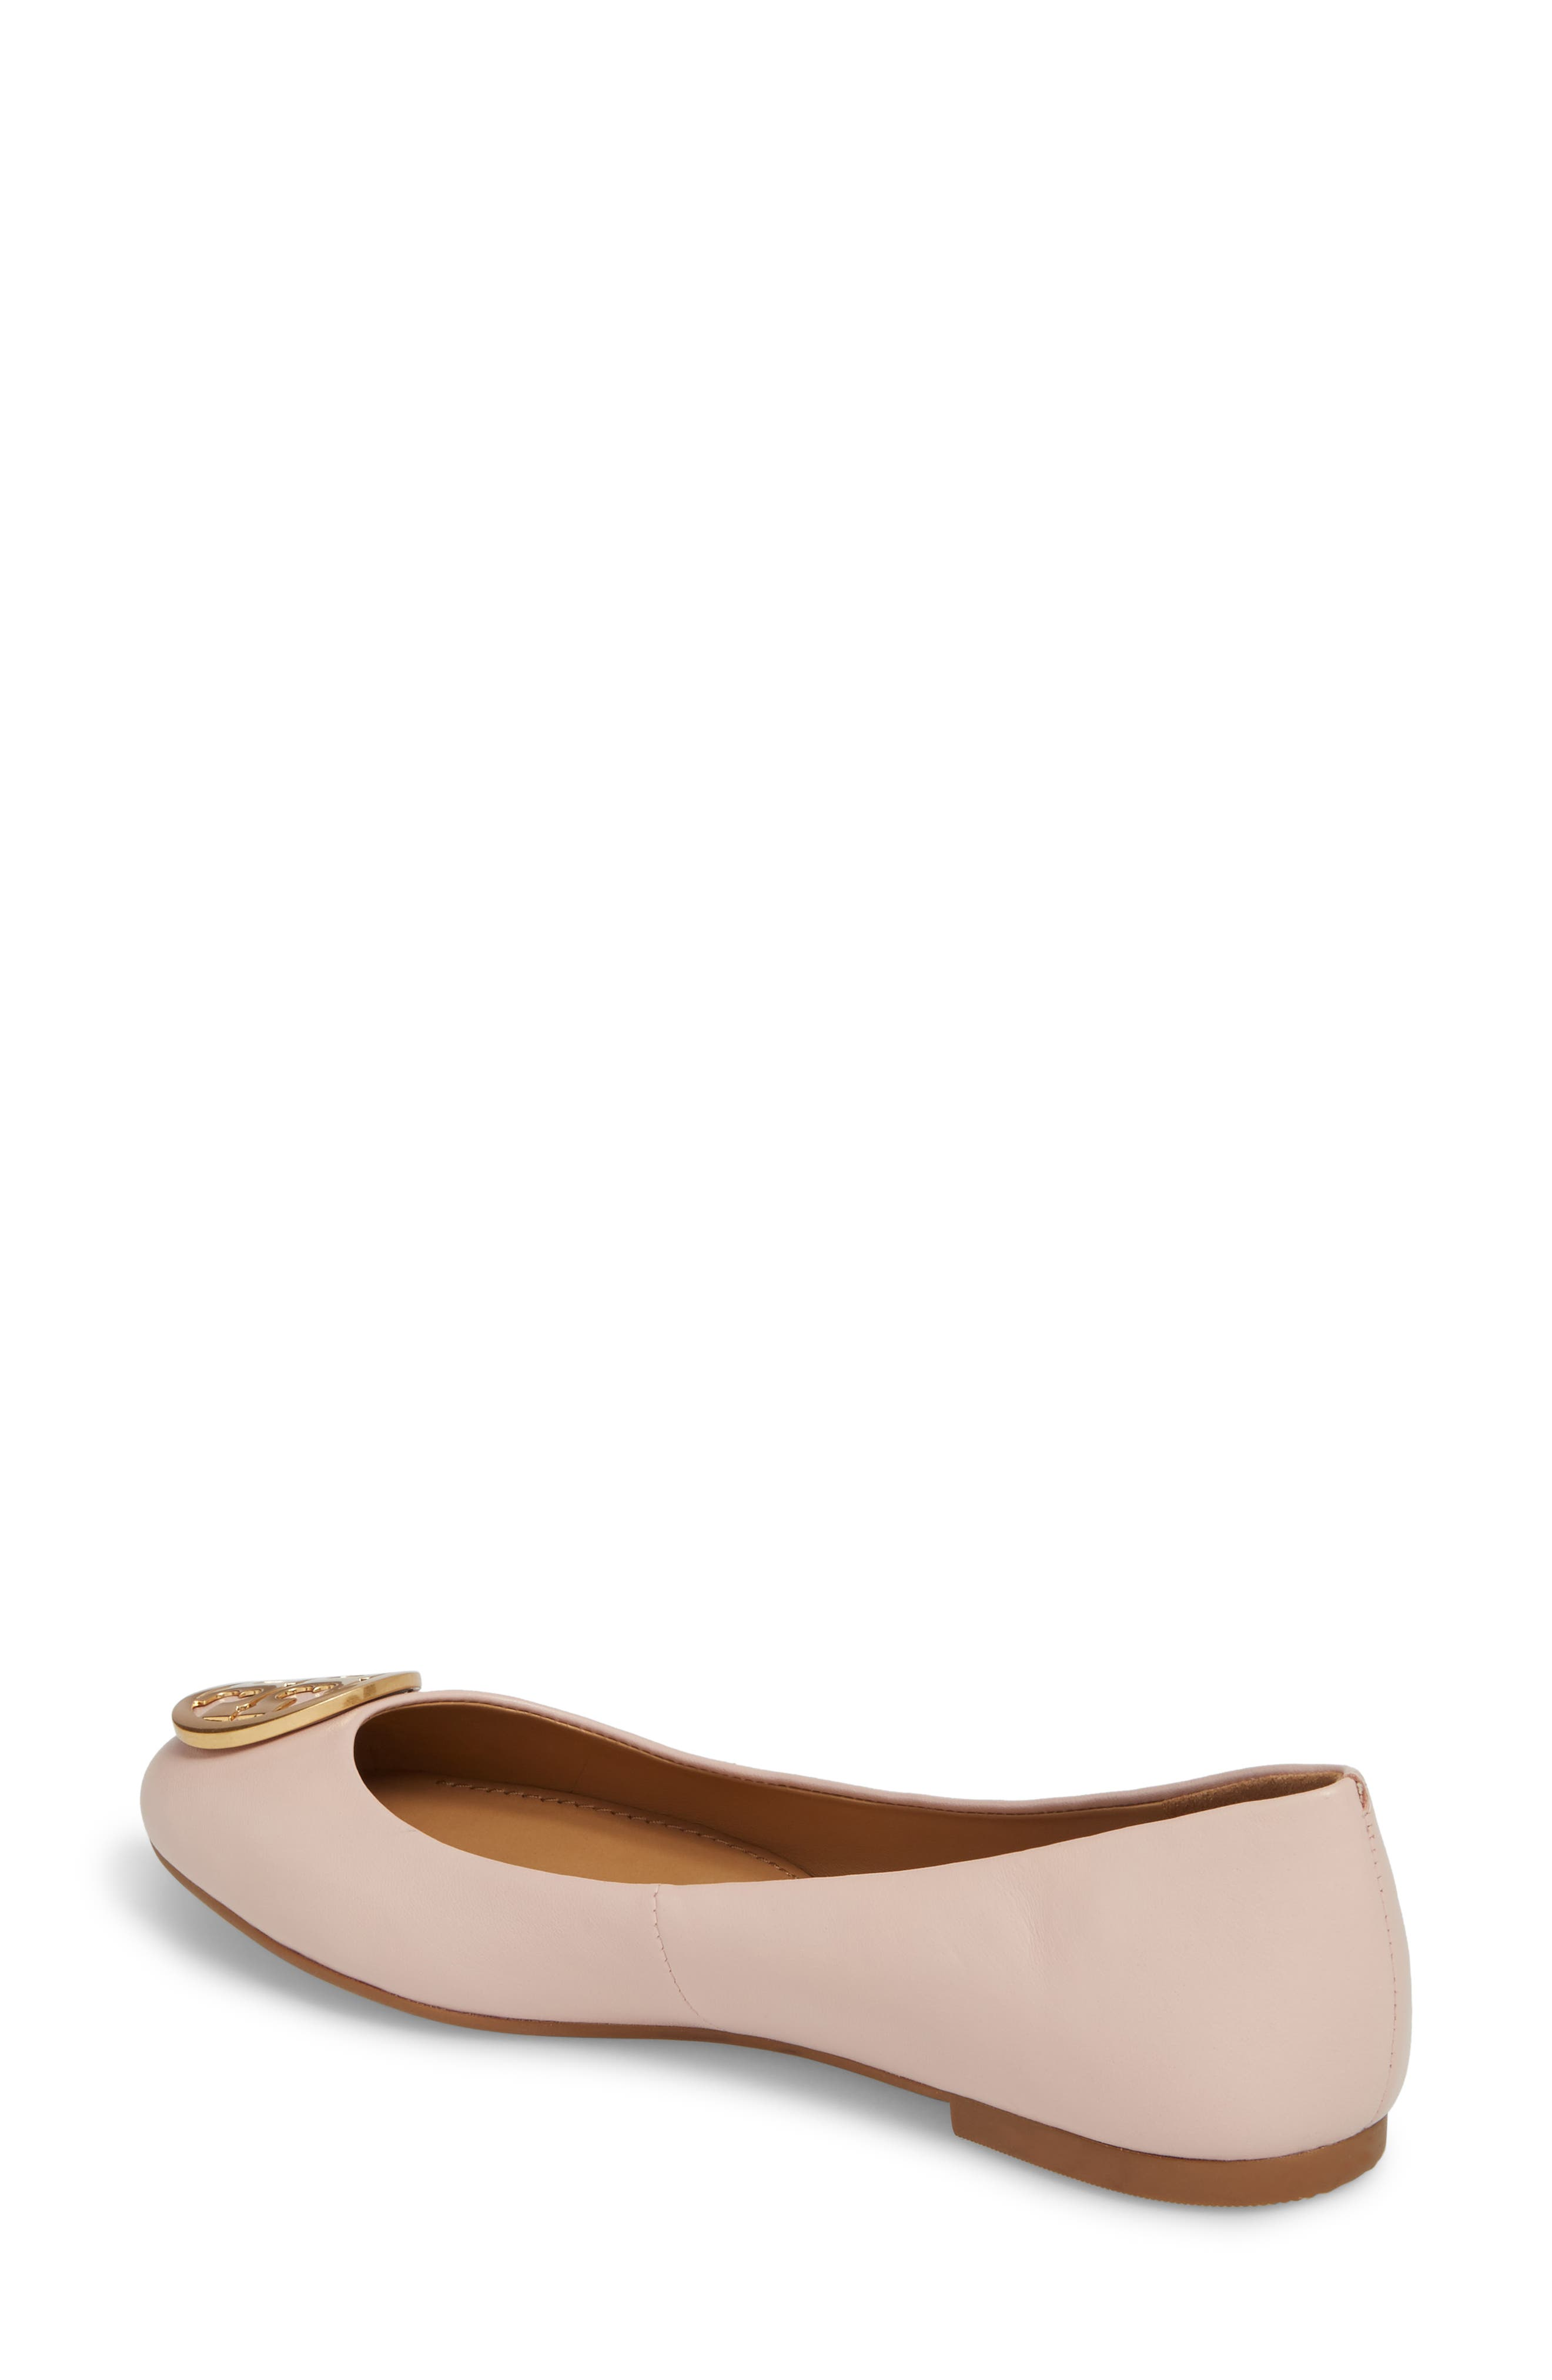 Benton Ballet Flat,                             Alternate thumbnail 2, color,                             Sea Shell Pink